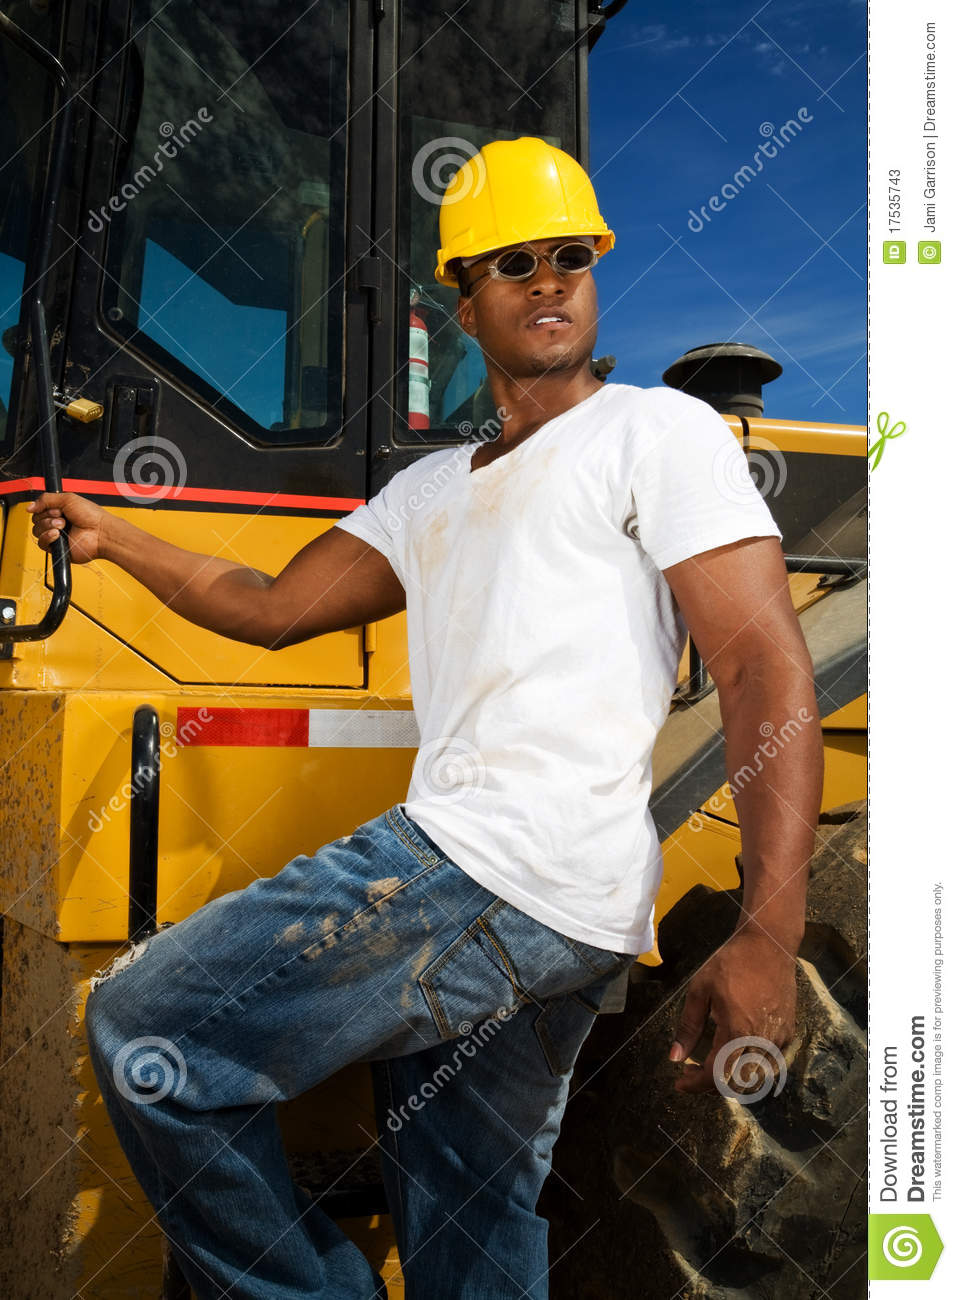 Construction Worker stock image. Image of shirt, dirt - 17535743